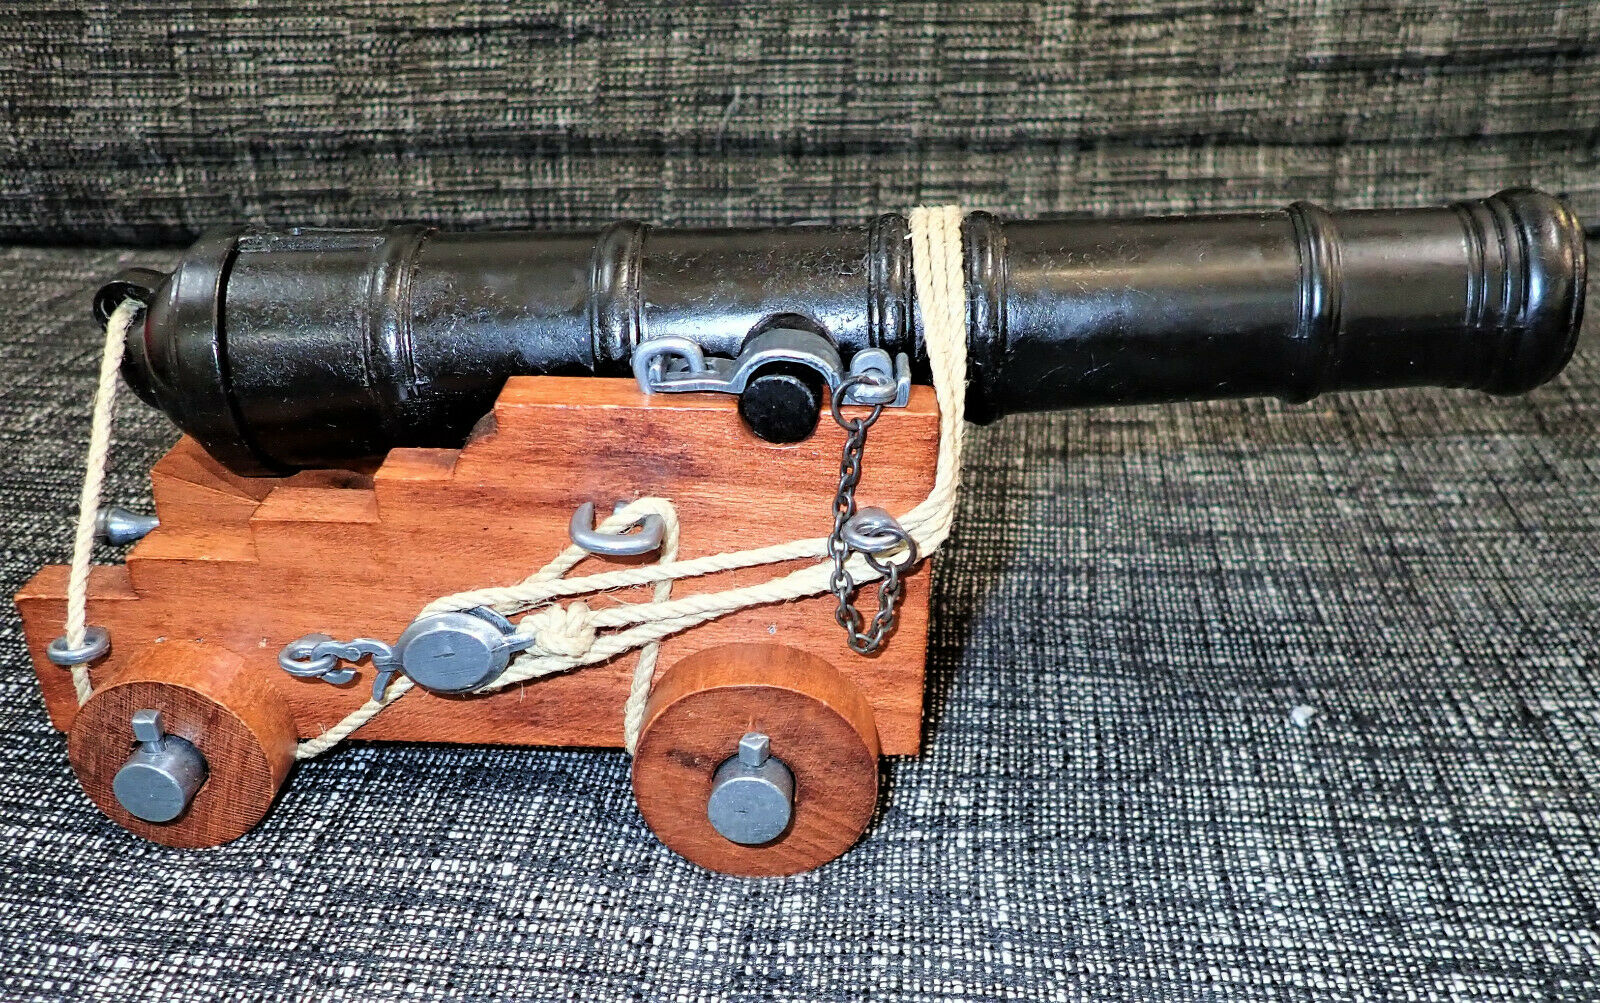 18TH CENTURY BRITISH ROYAL NAVY SHIPS TOY TOY MODEL CANNON WITH CARRIAGE